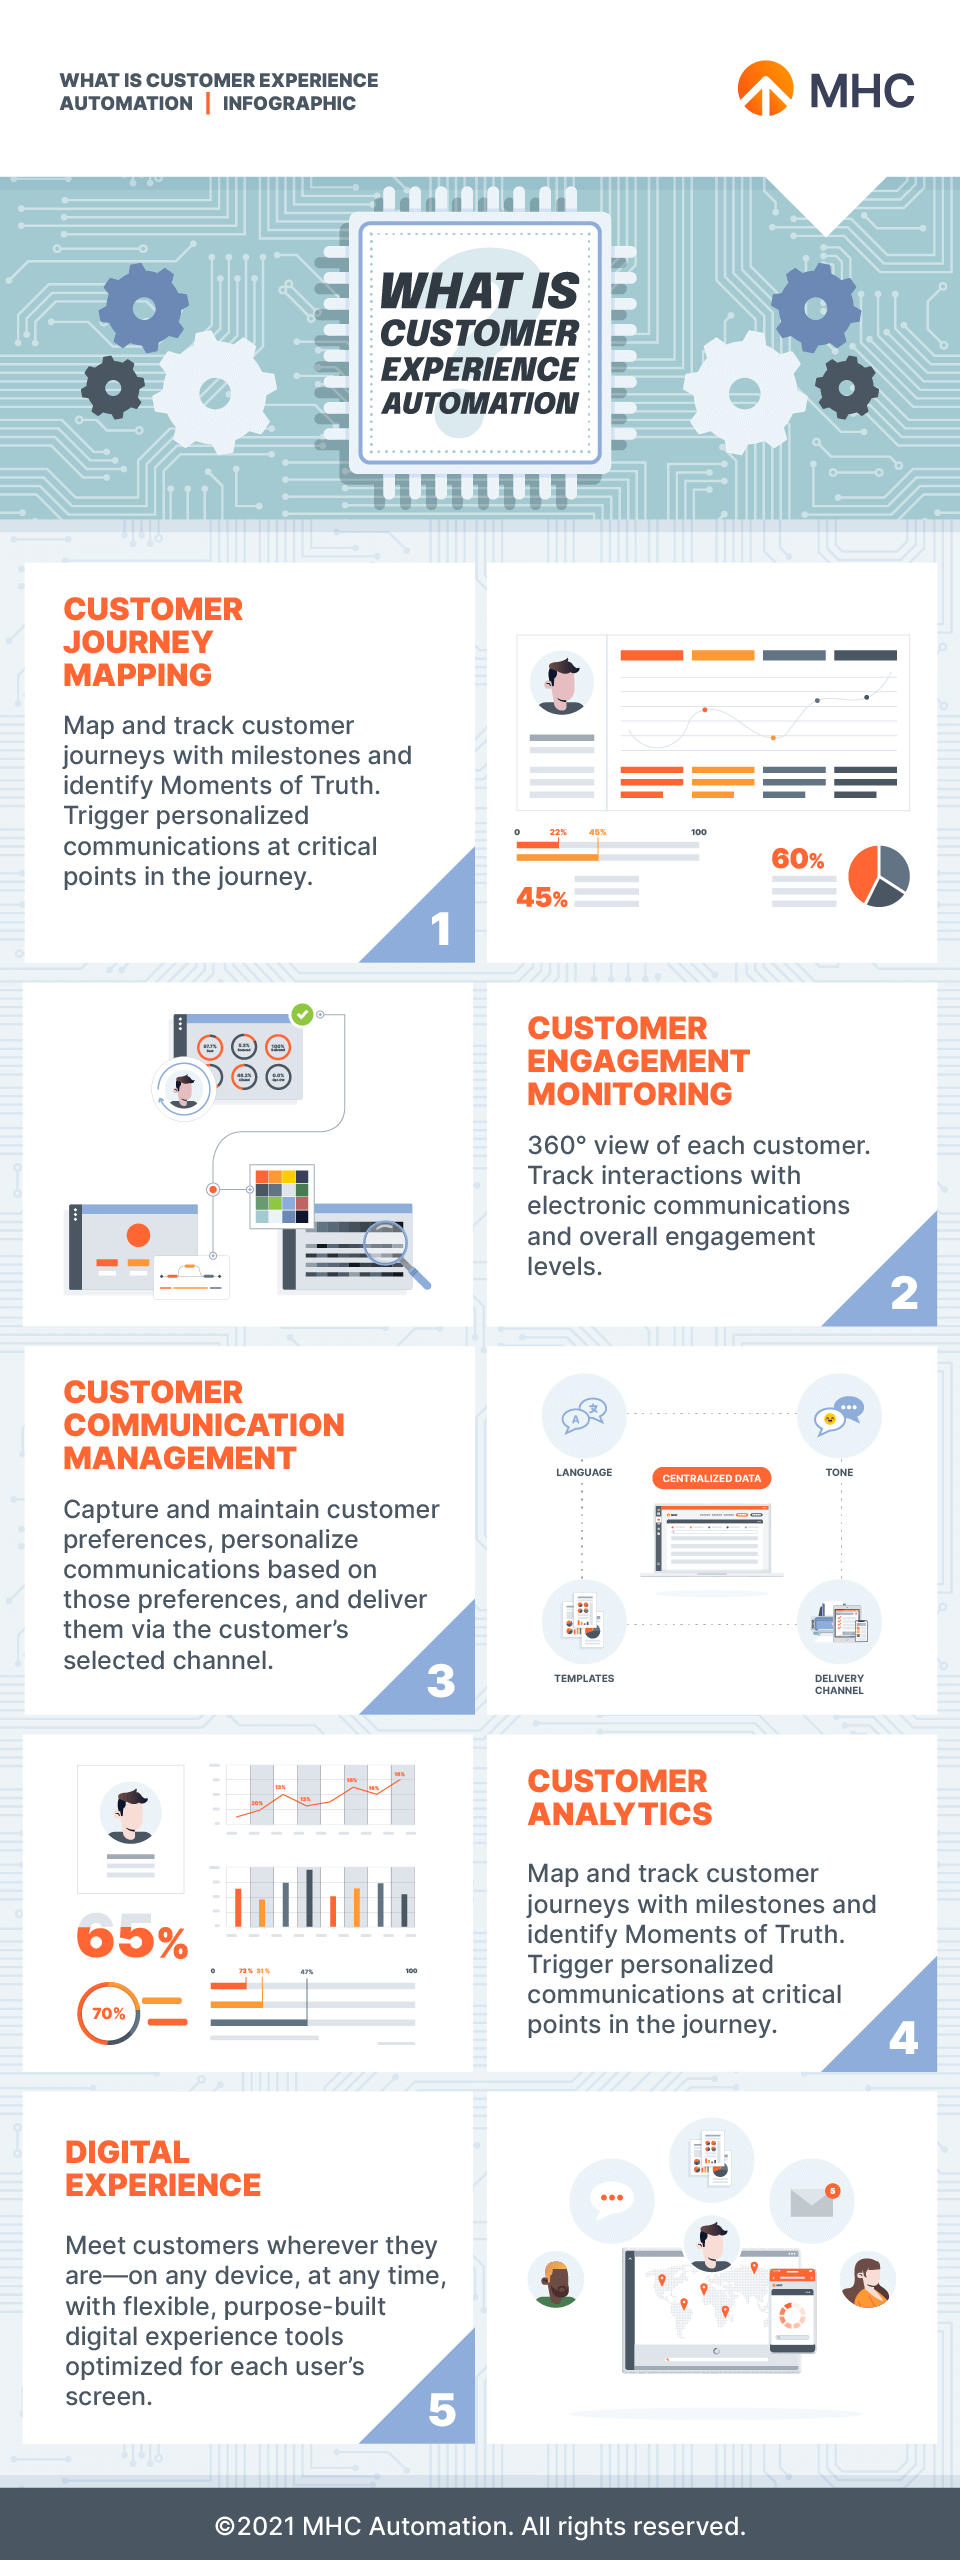 What is Customer Experience Automation infographic